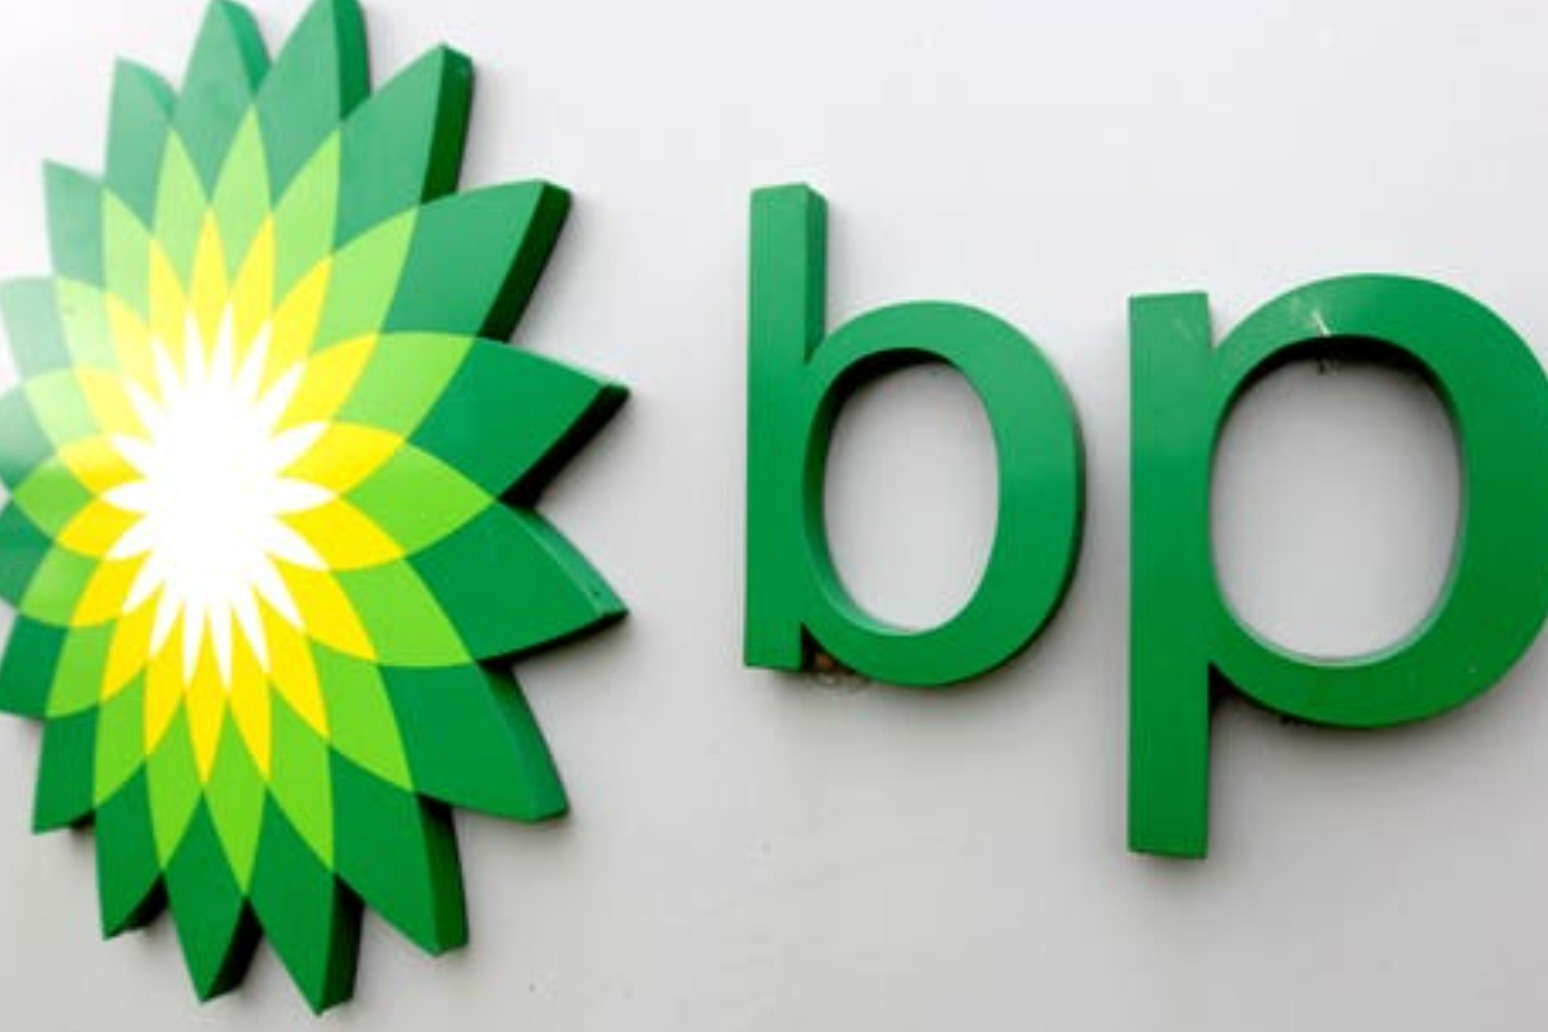 BP swings to hefty annual loss but raises hope of 'better days ahead'